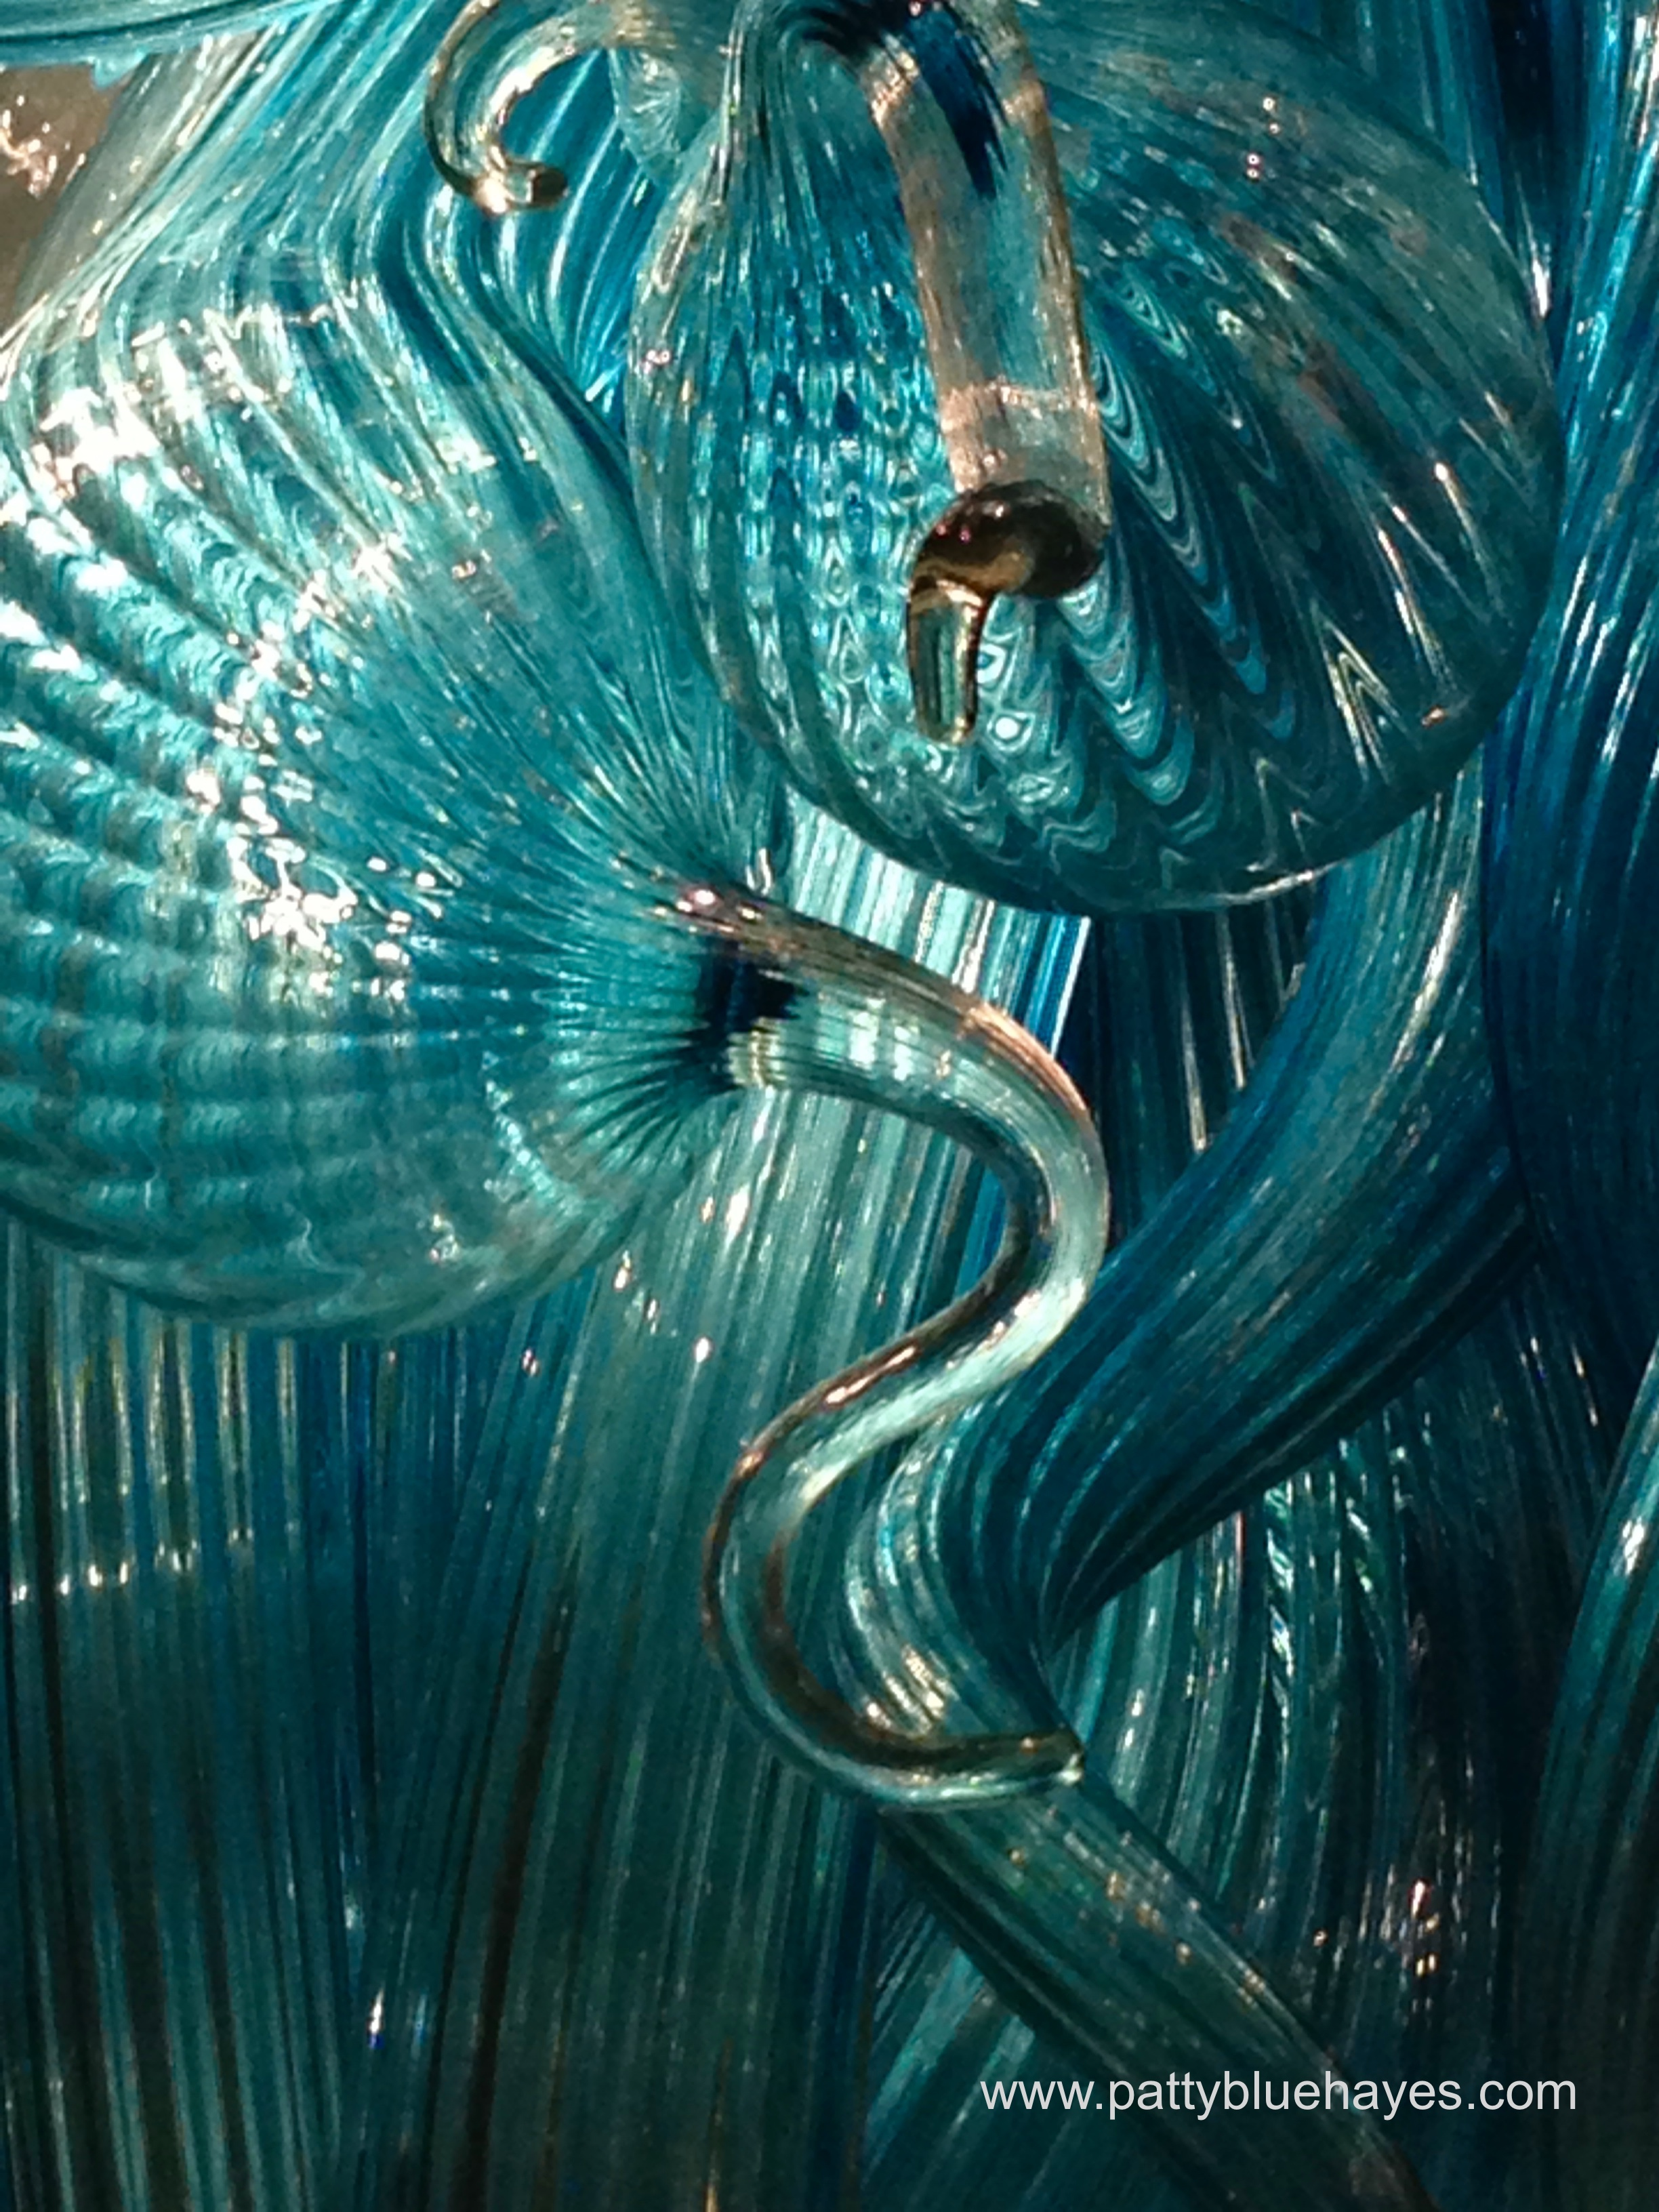 Chihuly Gardens and Glass - Seattle, WA